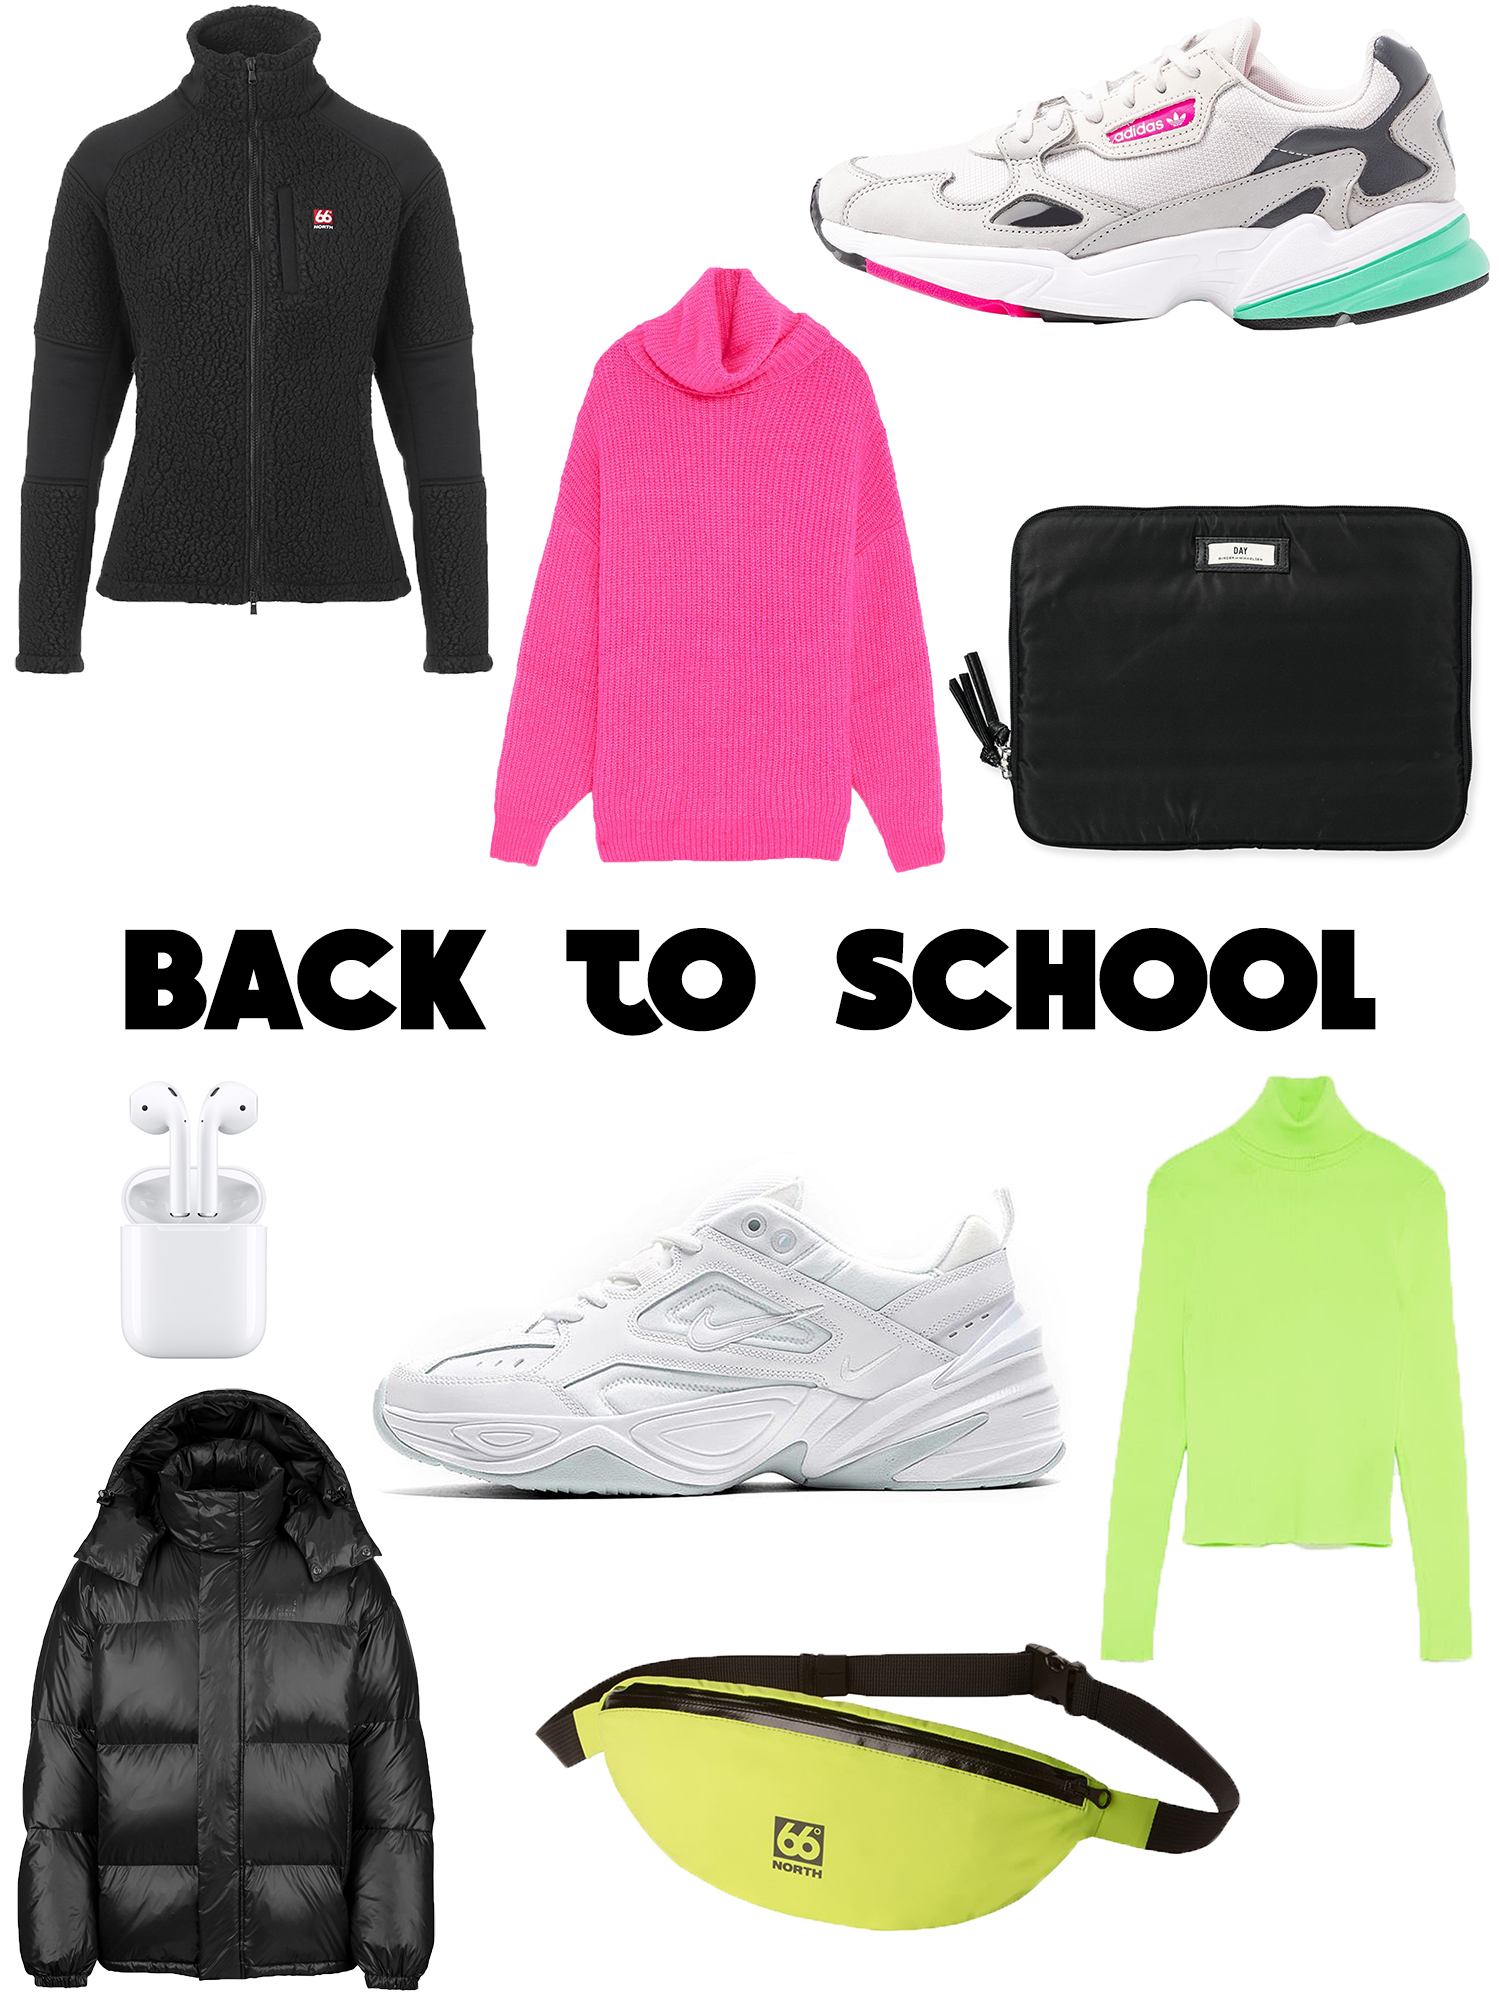 BACK TO SCHOOL: